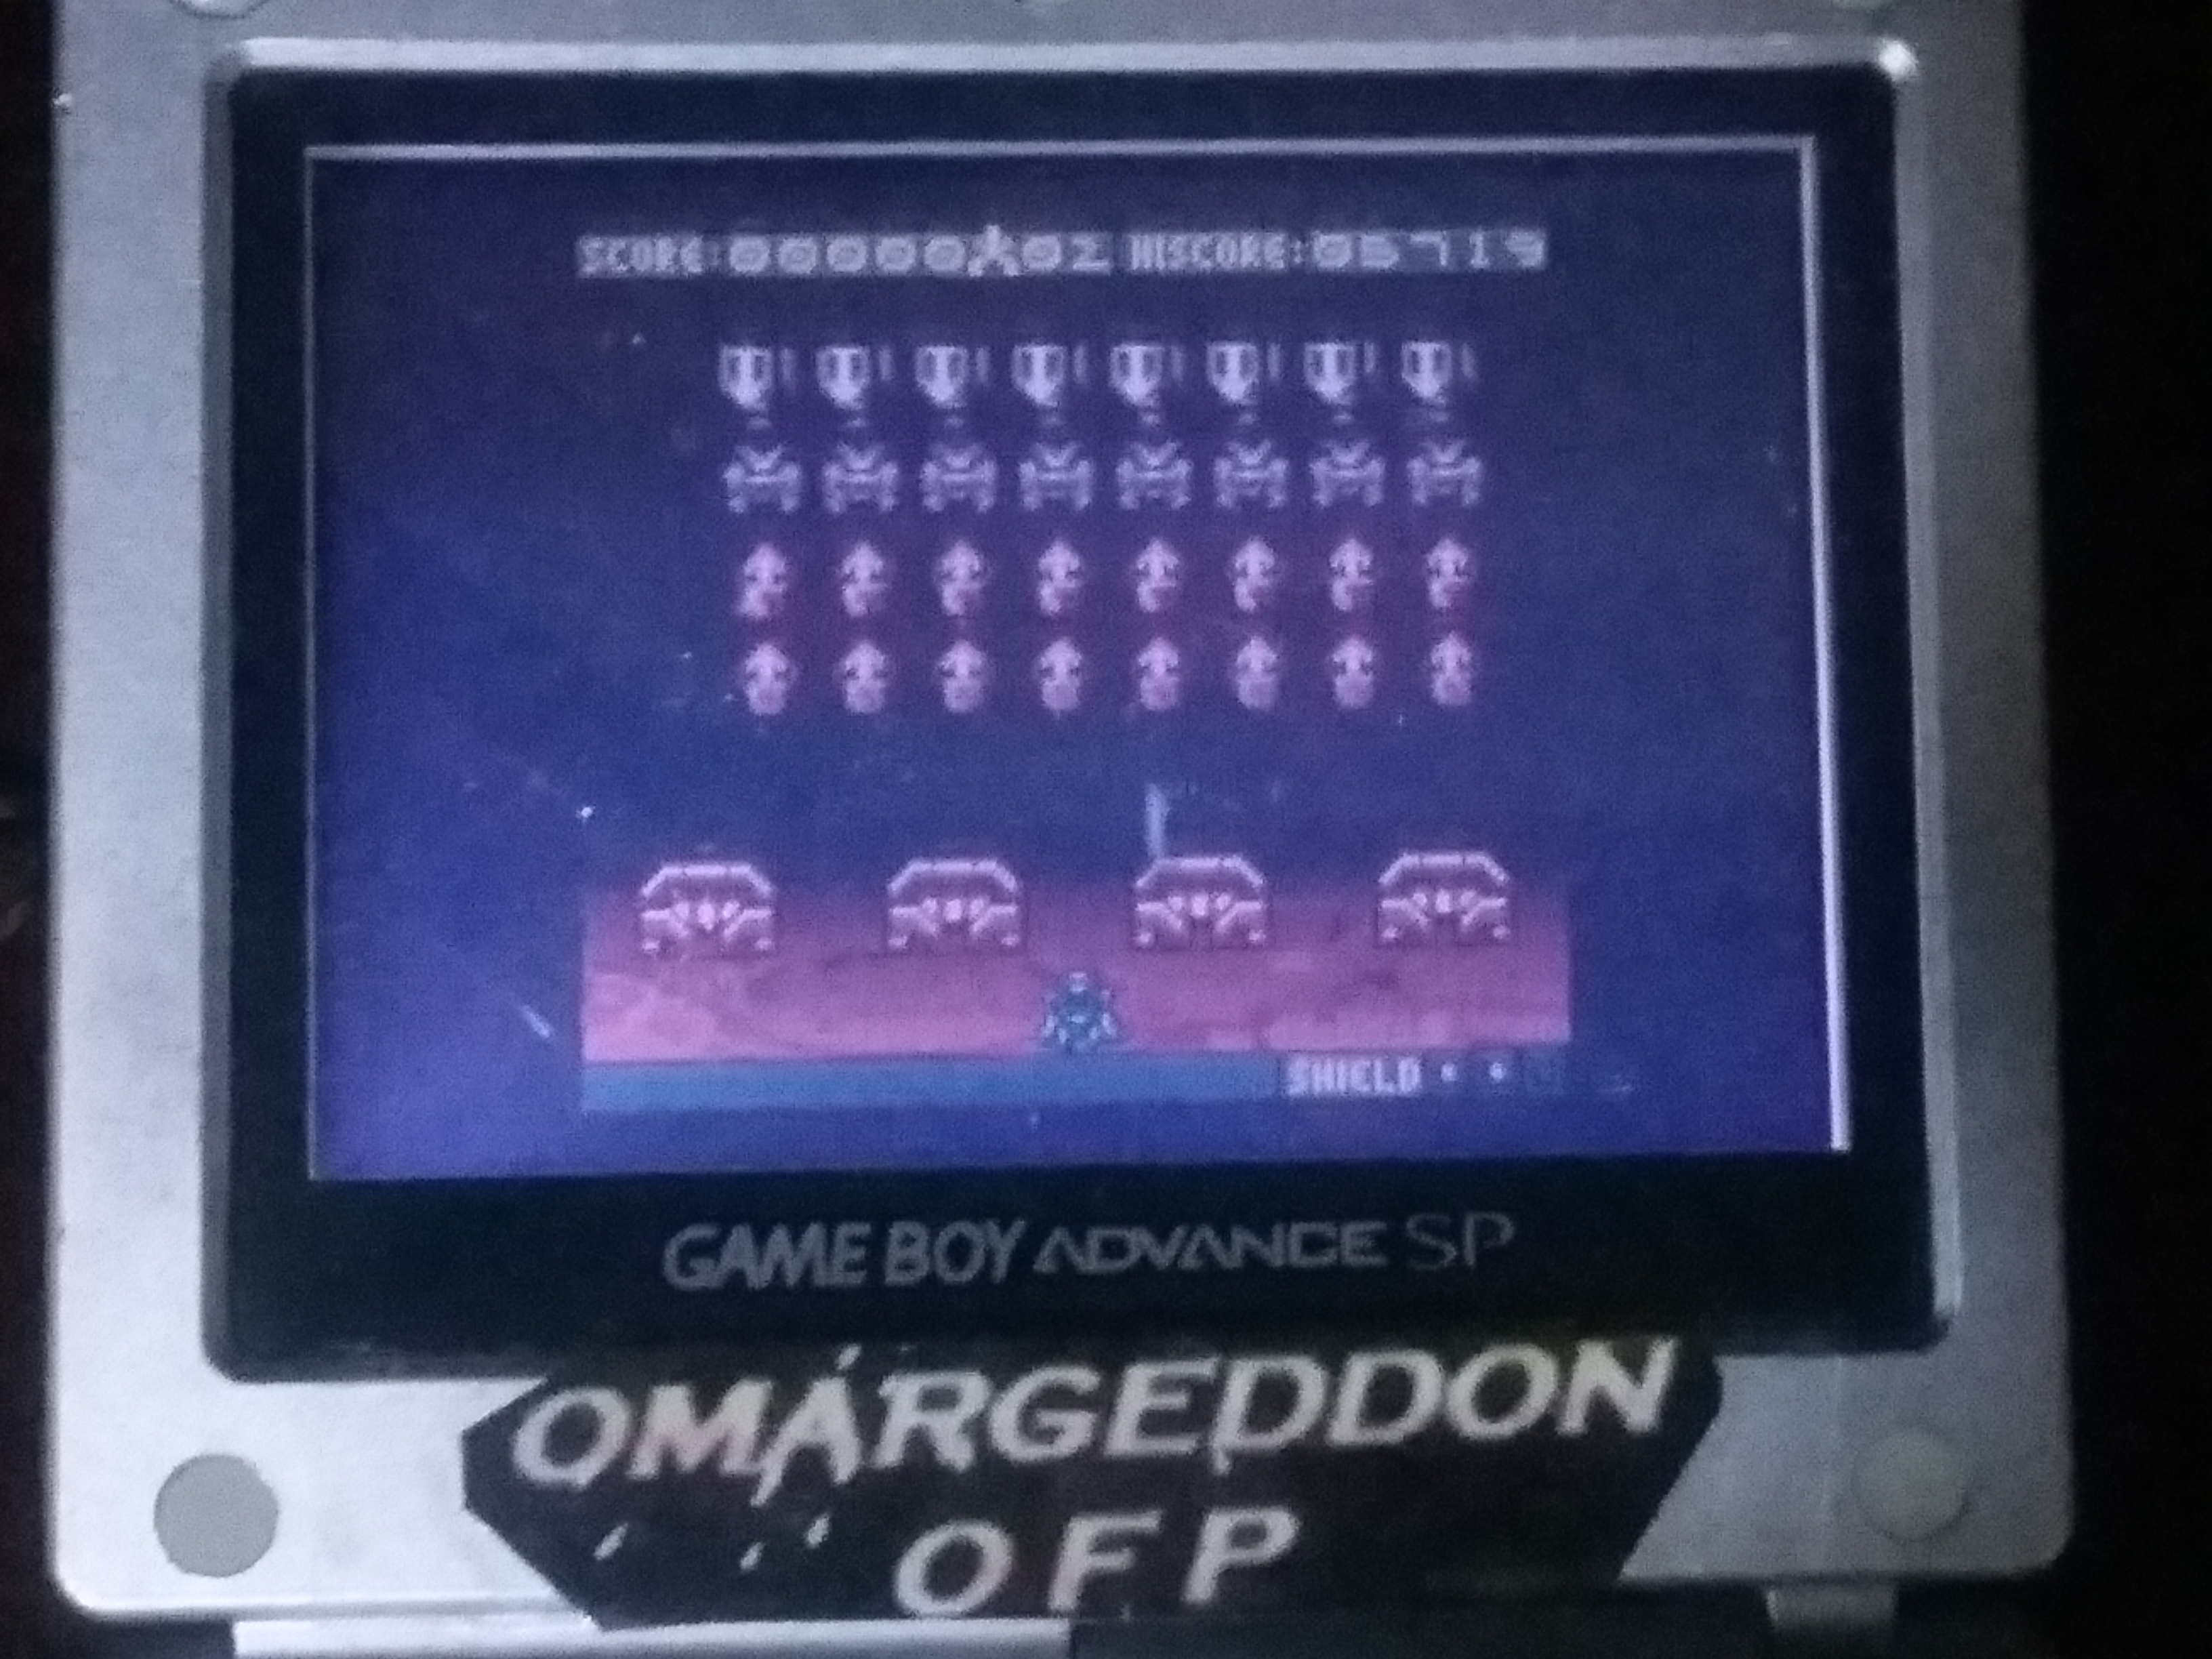 omargeddon: Space Invaders (Game Boy Color) 5,719 points on 2018-01-13 19:37:09